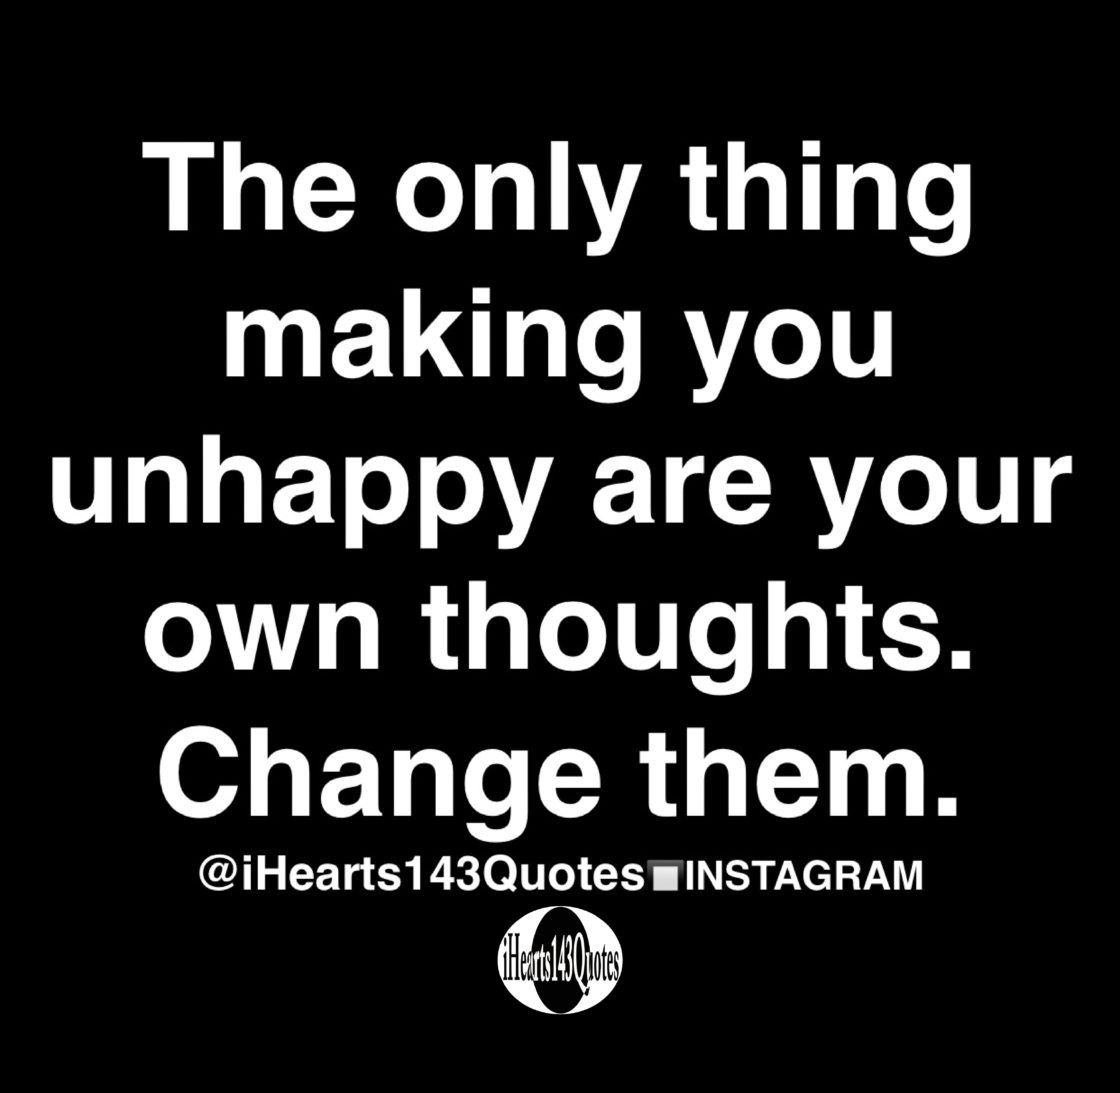 The only thing making you unhappy are your own thoughts. Change them - Quotes